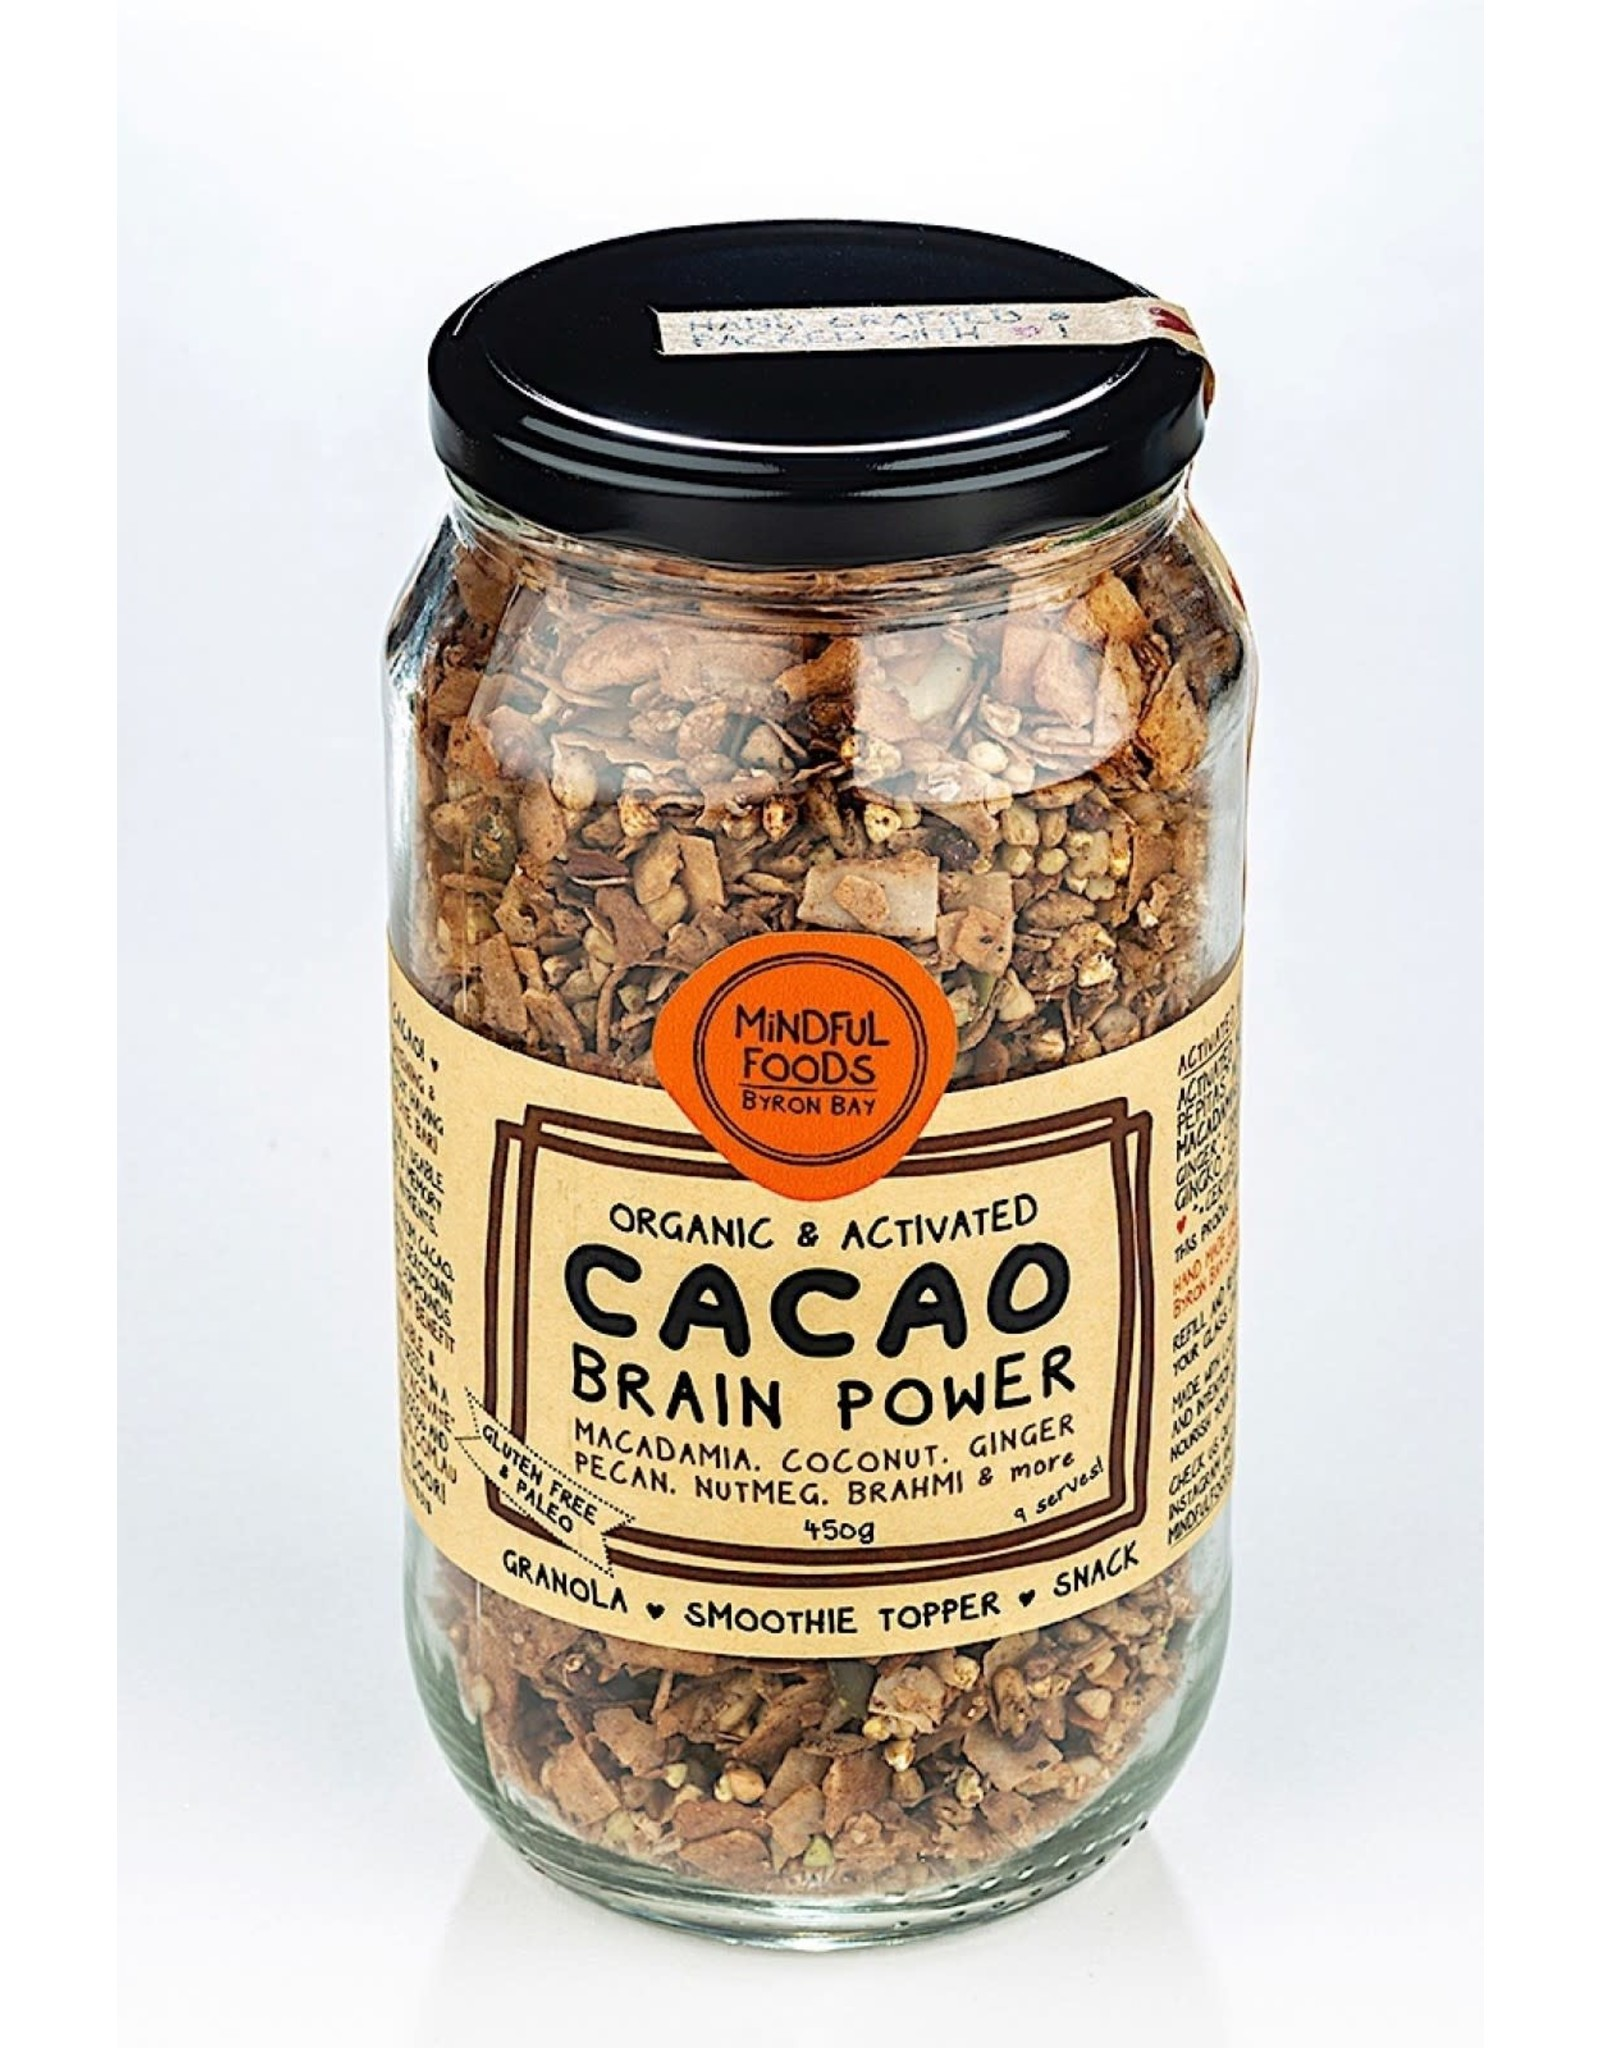 Mindful Foods Cacao Brain Power Granola